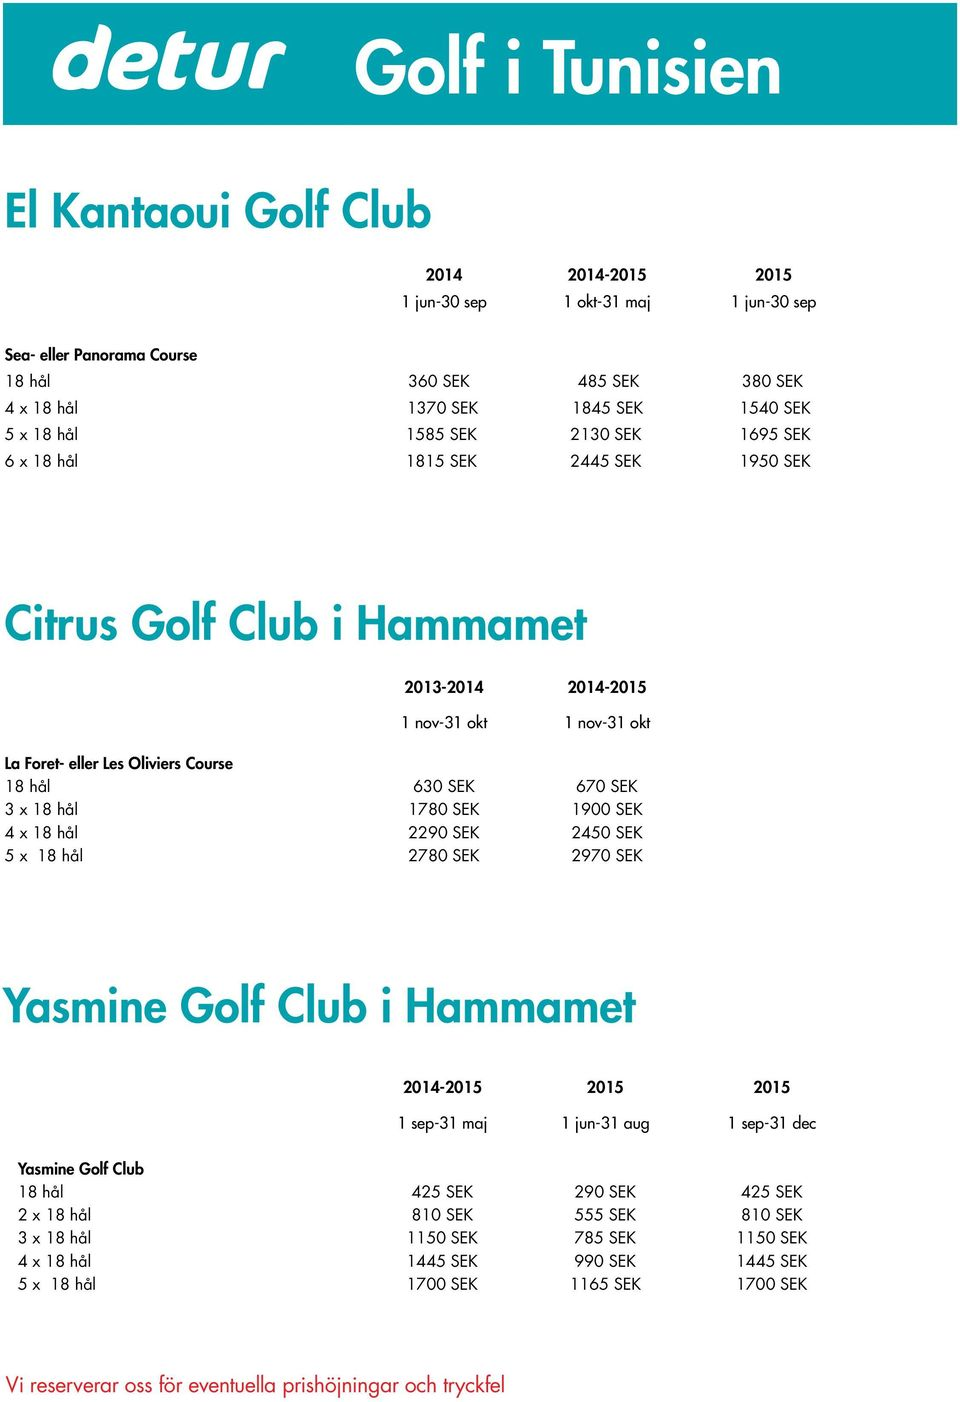 630 SEK 670 SEK 3 x 18 hål 1780 SEK 1900 SEK 4 x 18 hål 2290 SEK 2450 SEK 5 x 18 hål 2780 SEK 2970 SEK Yasmine Golf Club i Hammamet 2014-2015 2015 2015 1 sep-31 maj 1 jun-31 aug 1 sep-31 dec